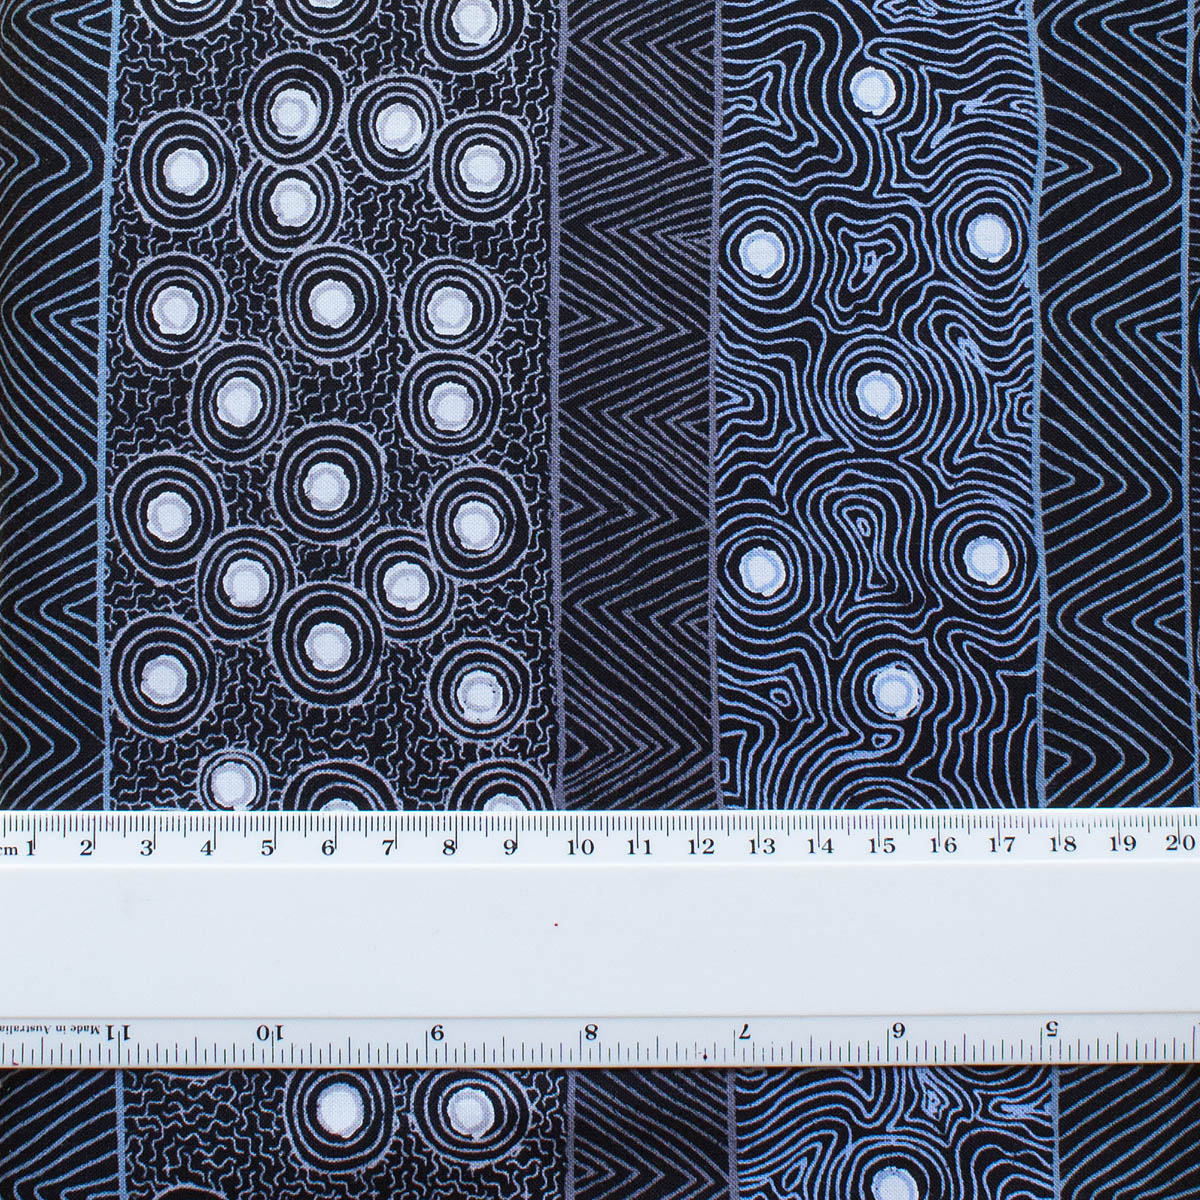 FOUR SEASONS BLACK by Aboriginal Artist MARIE ELLIS